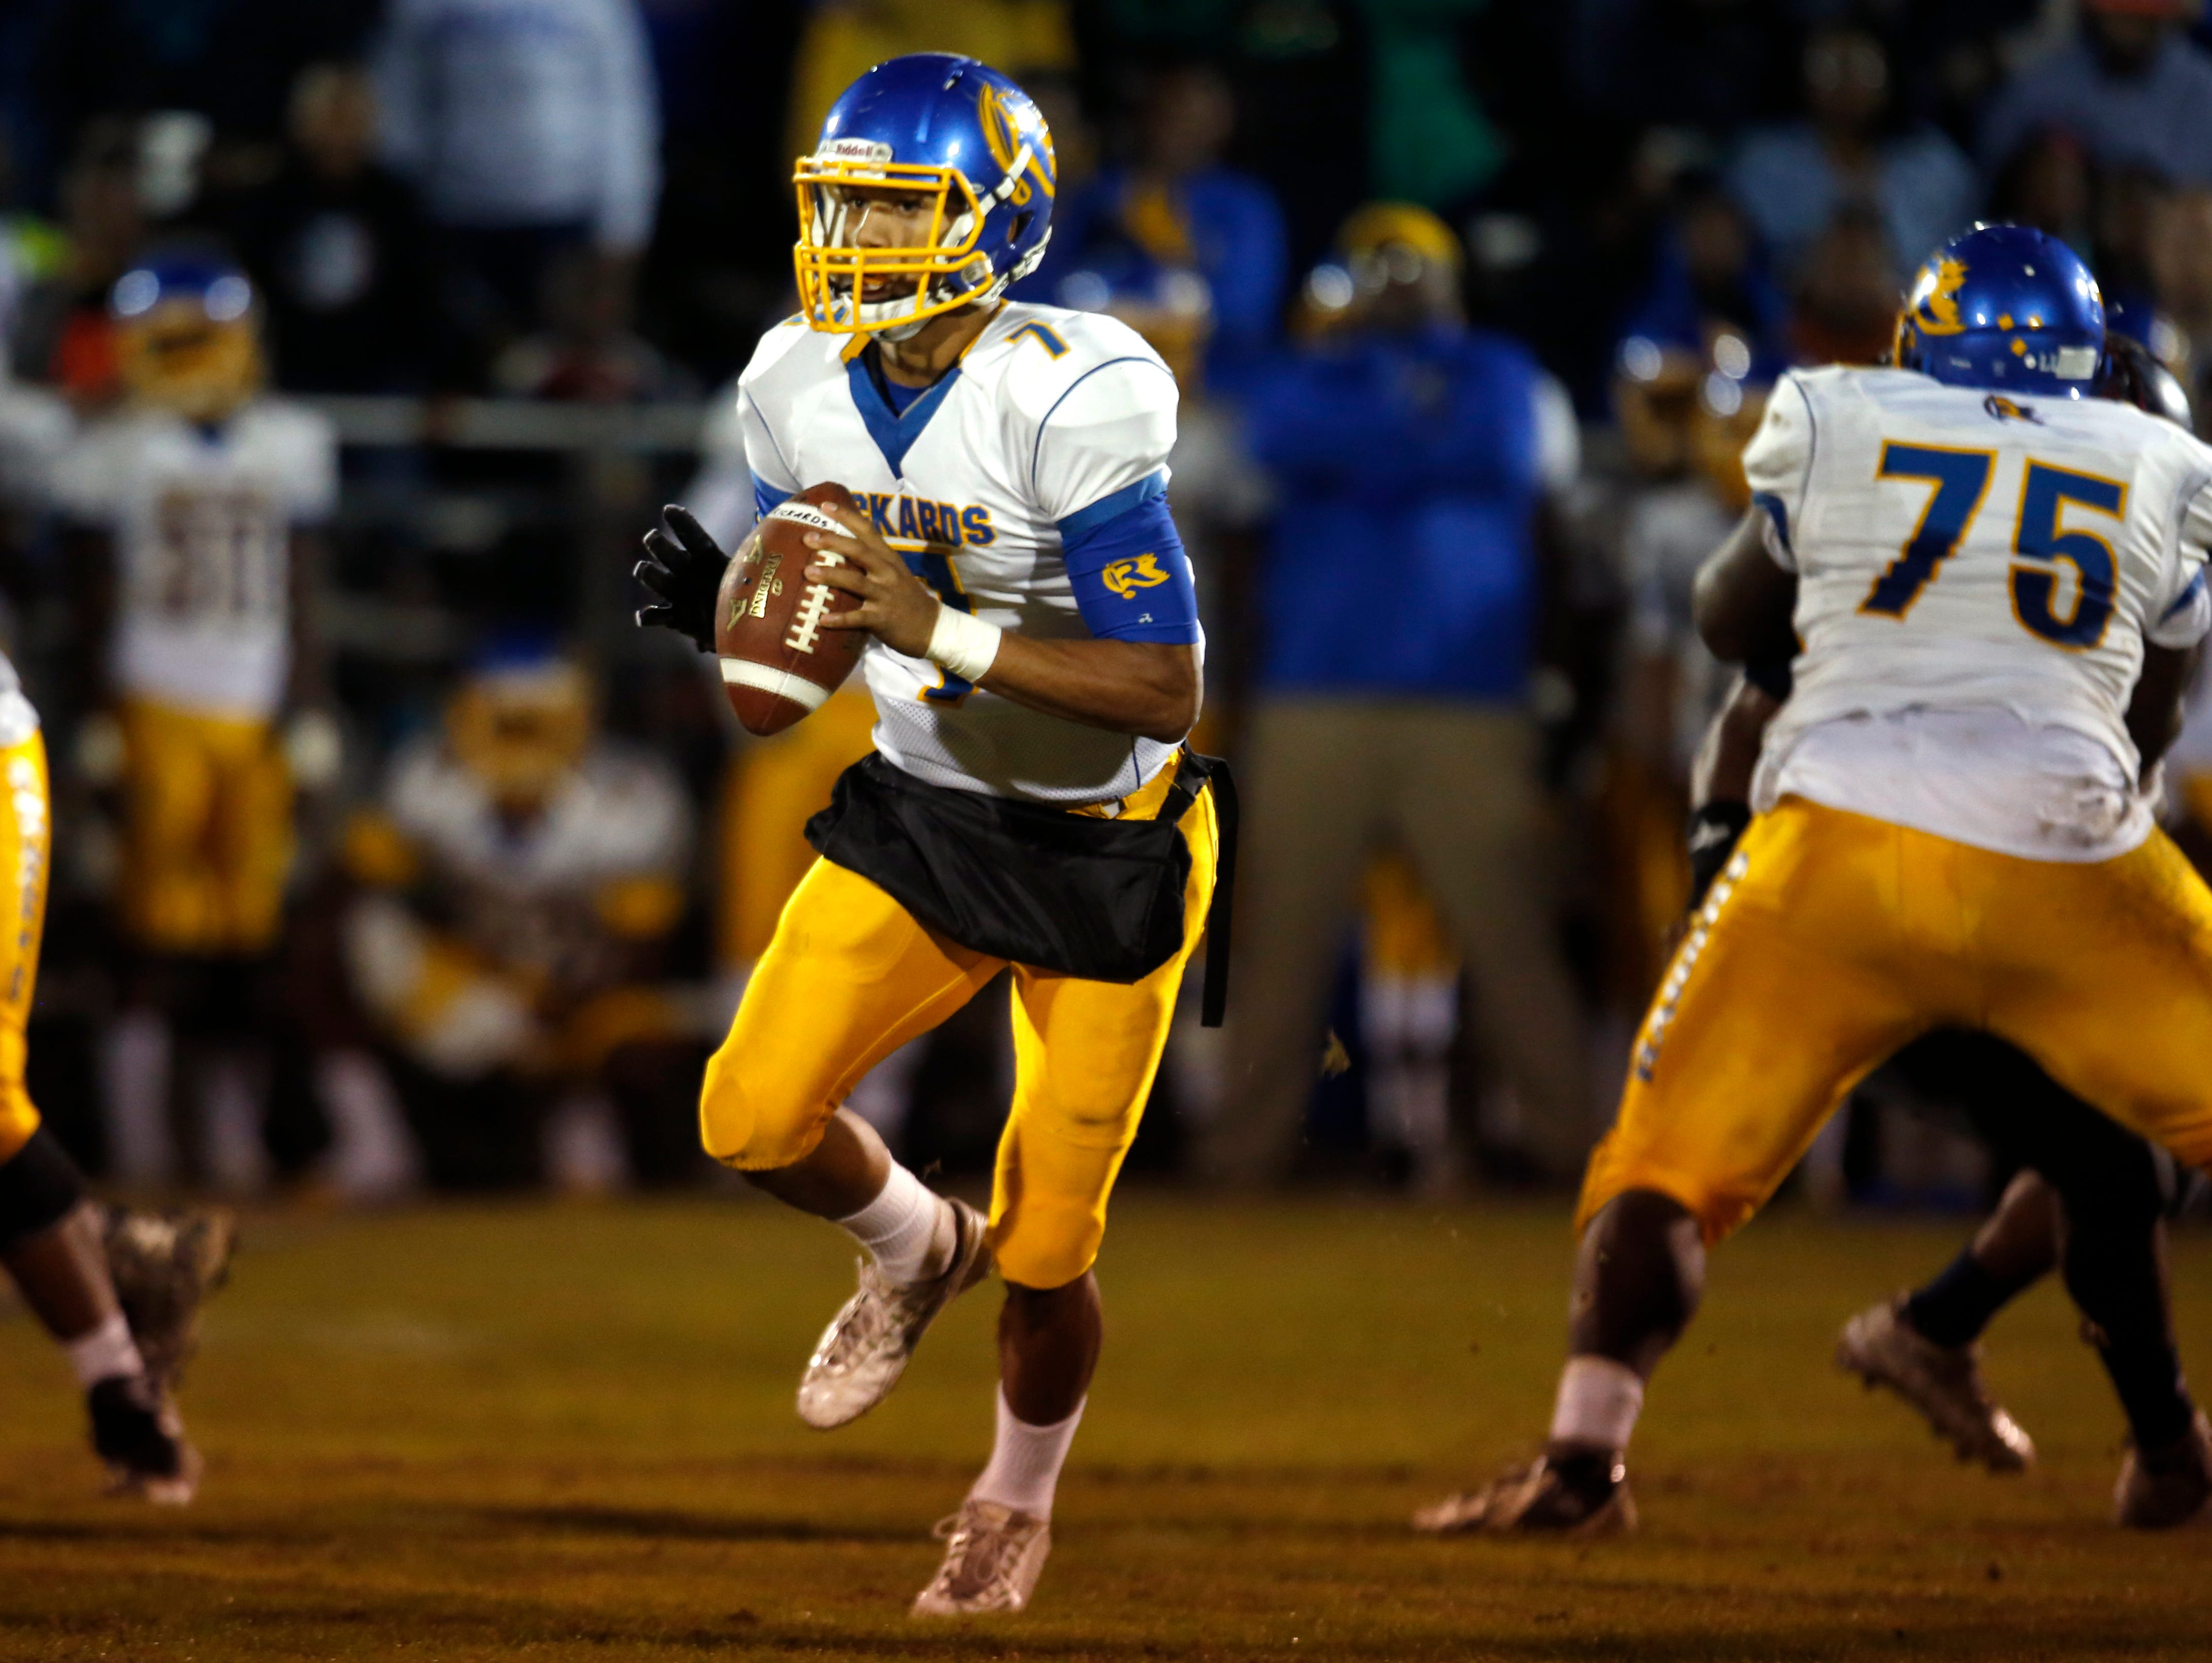 Rickards quarterback Dj Phillips looks to throw the ball against Wakulla during their playoff game on Friday.